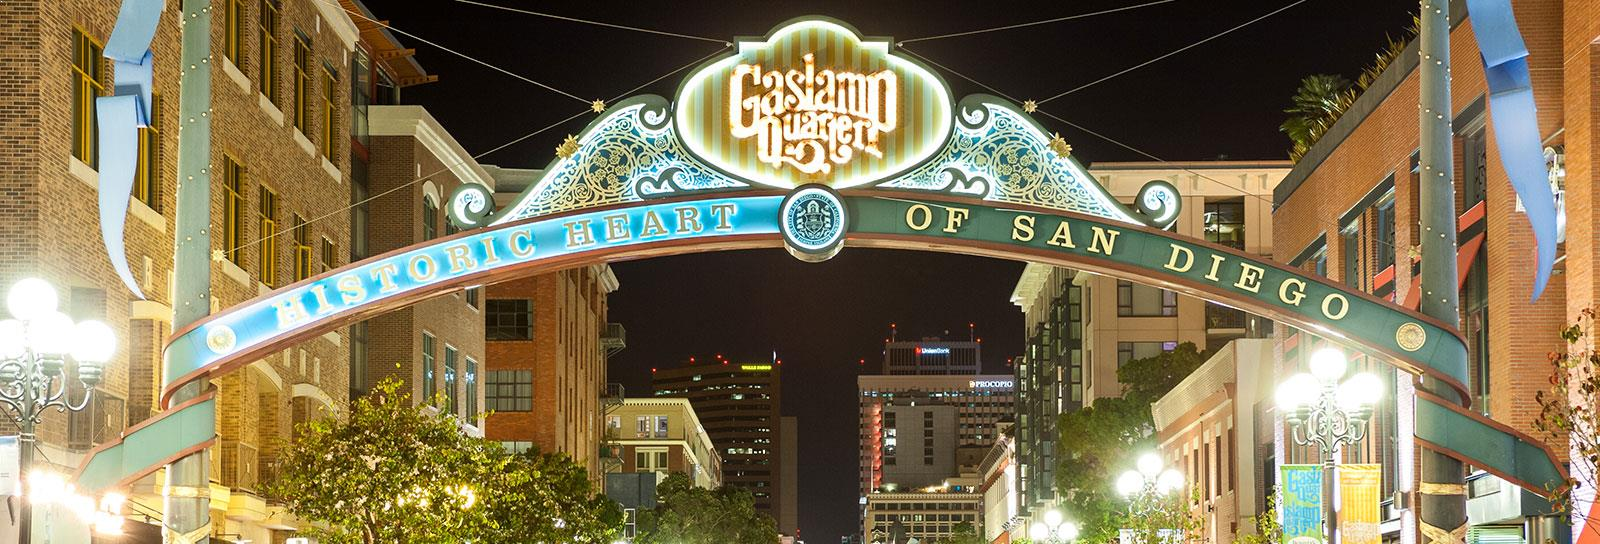 Gaslamp Quarter San Diego, California